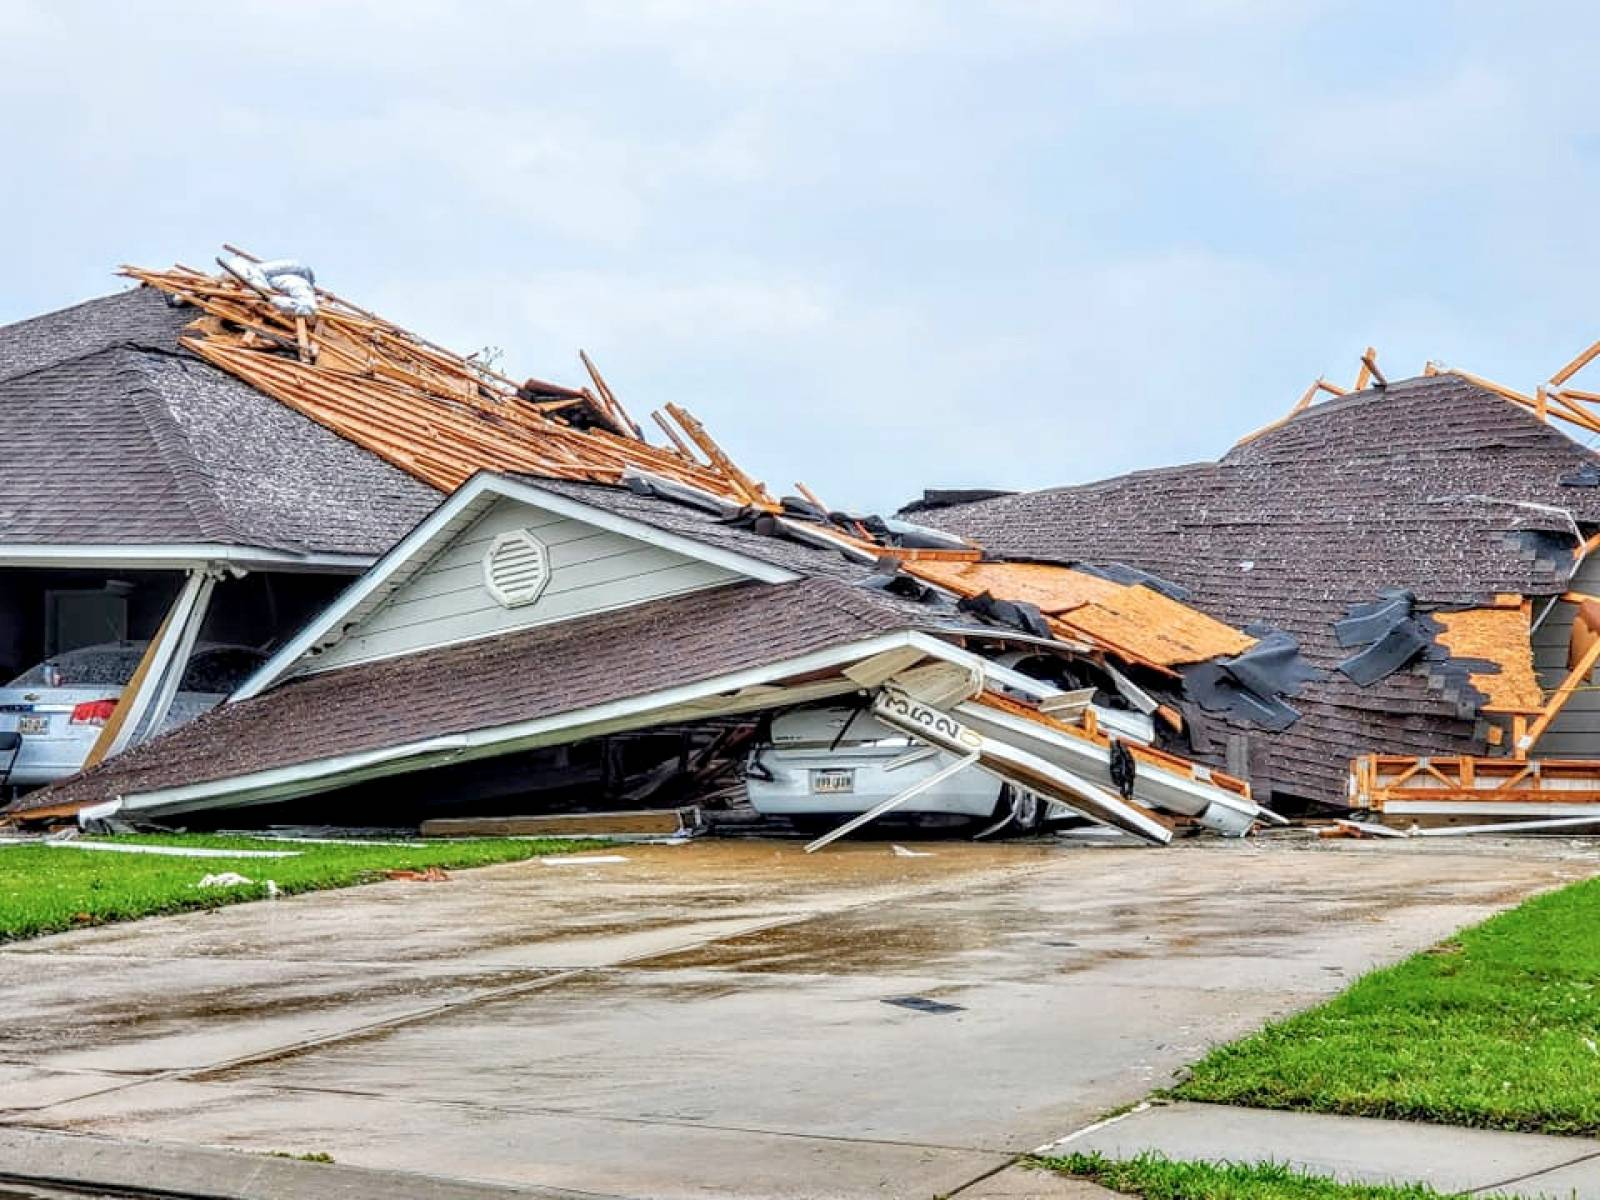 Social media images of damaged buildings and vehicles in the aftermath of a tornado in Monroe, Louisiana